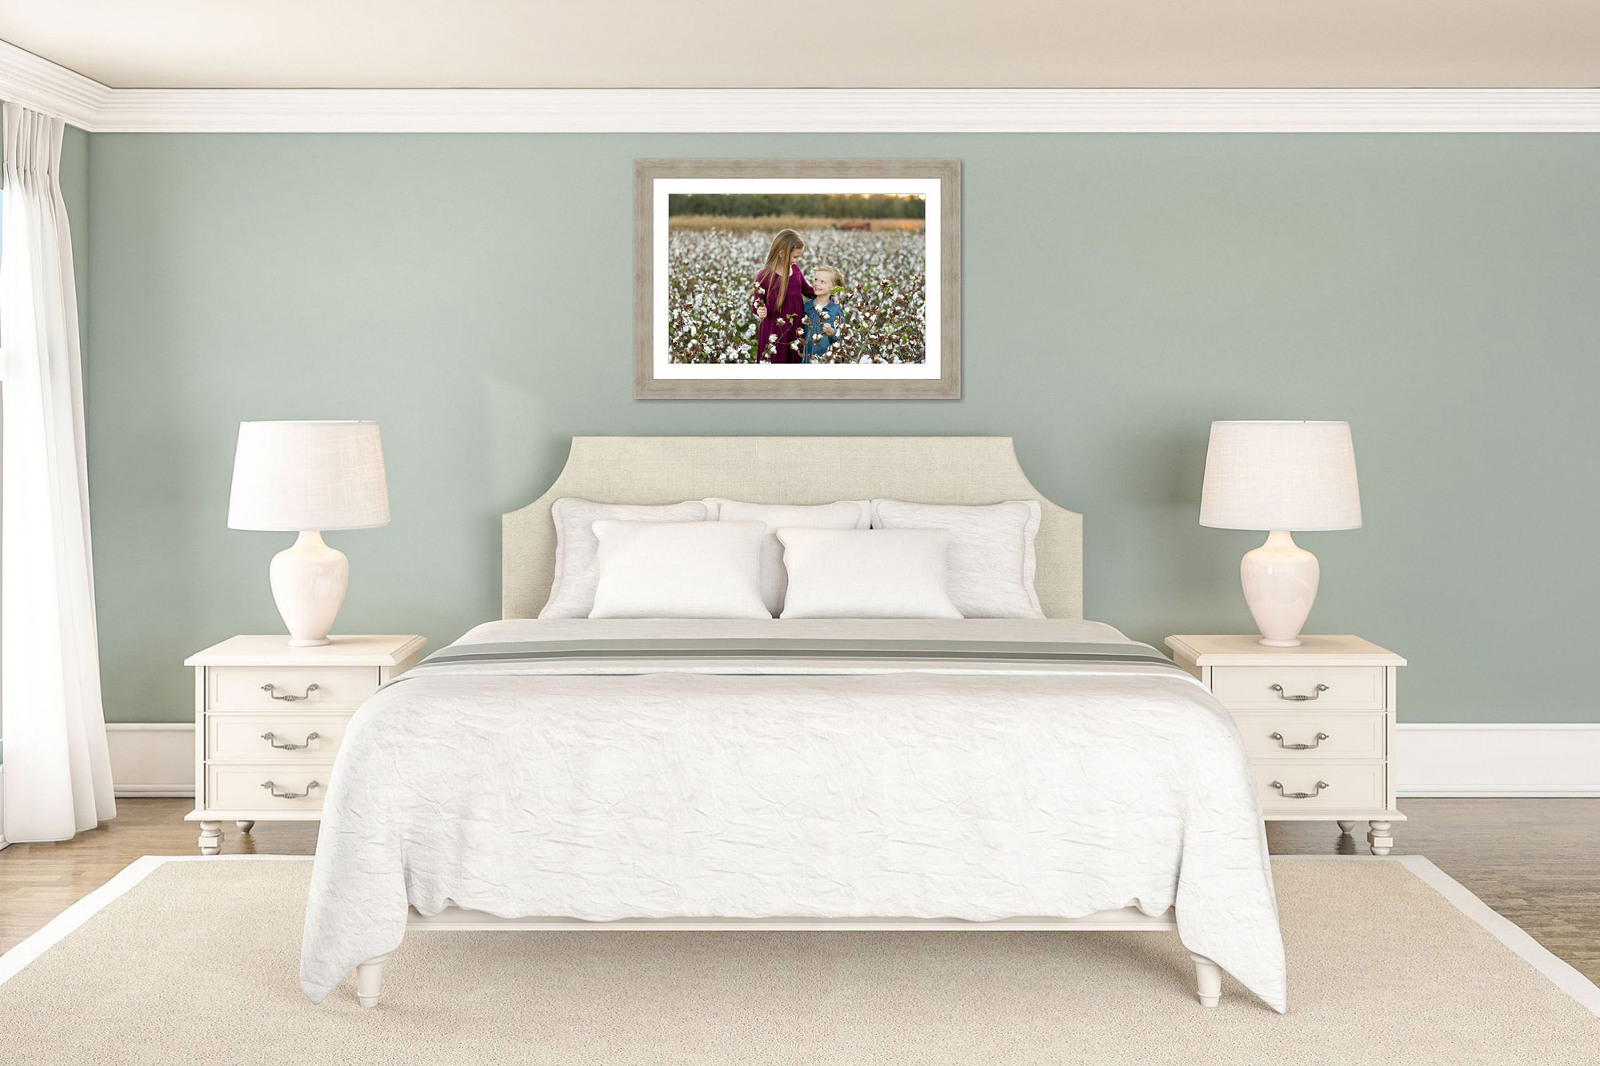 sample of family portrait above bed